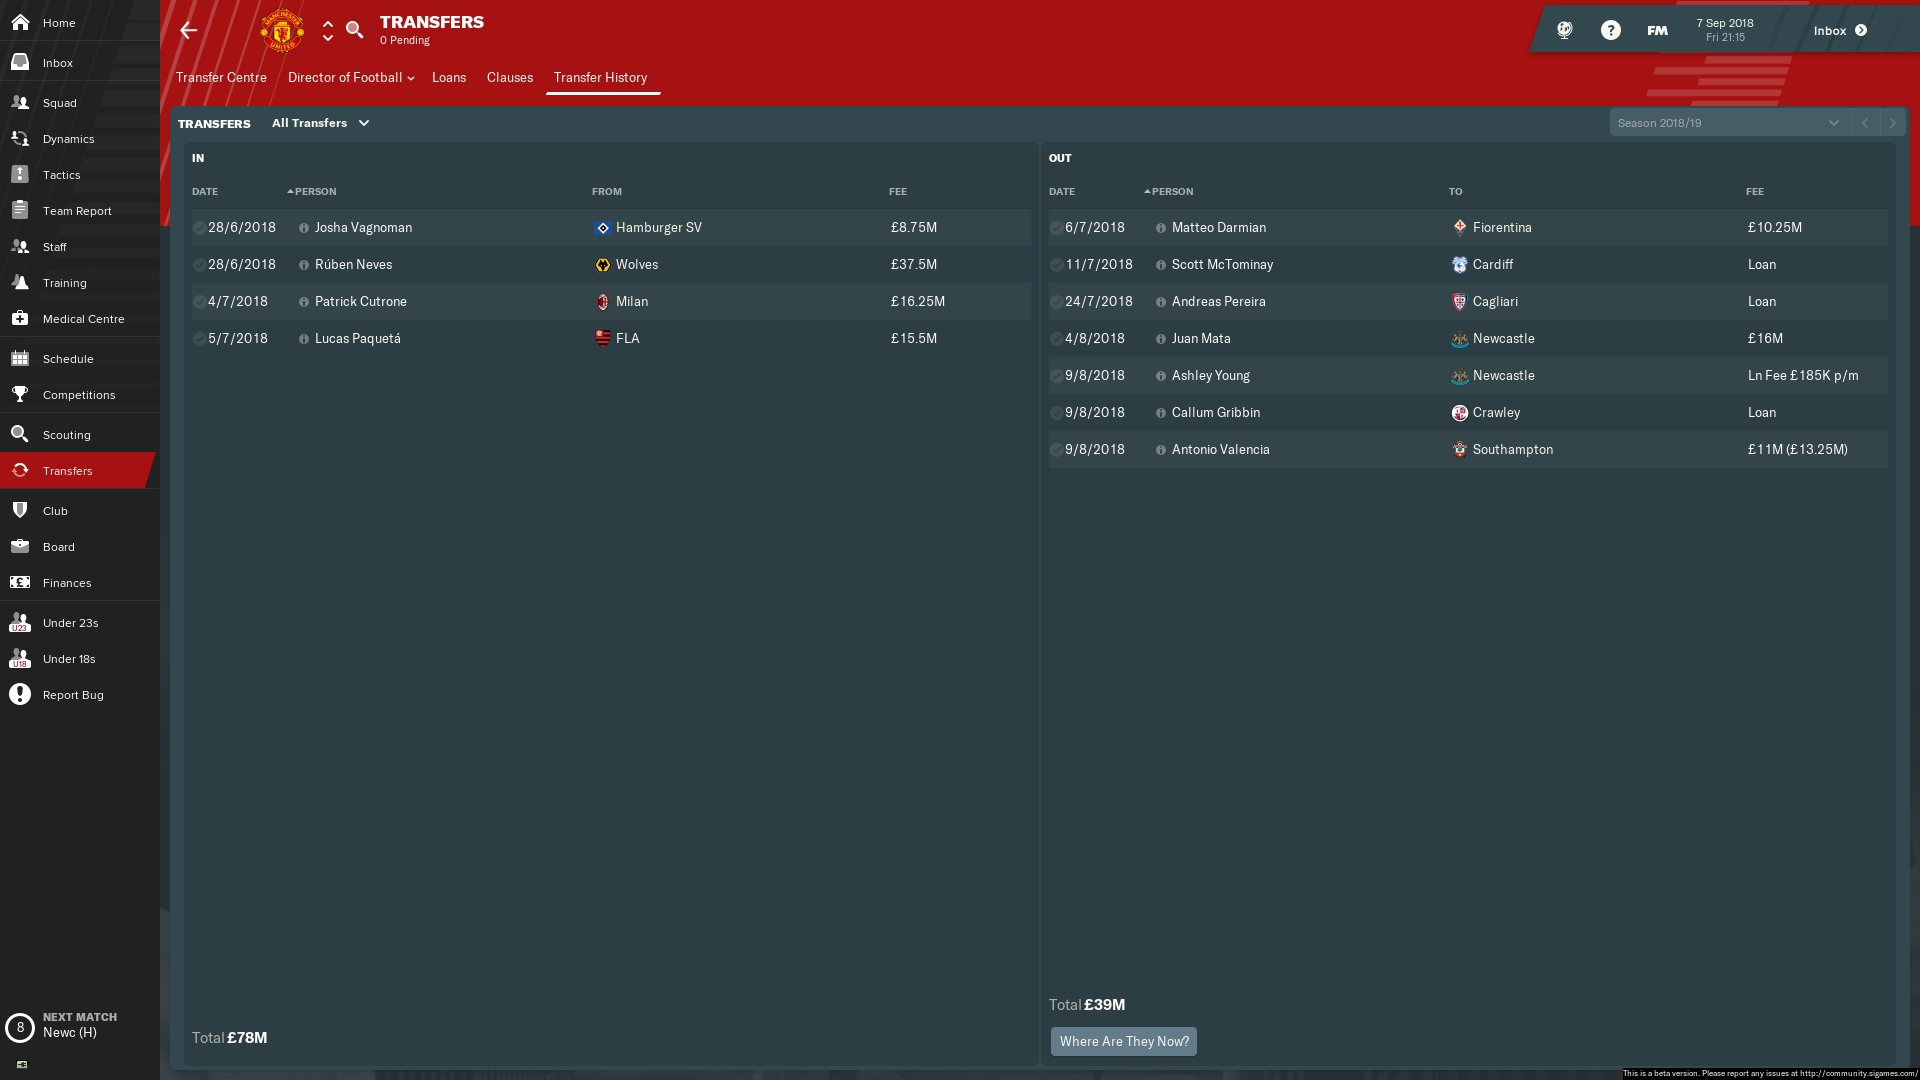 FM19] Manchester United - Good Player & Team Guide - Sports